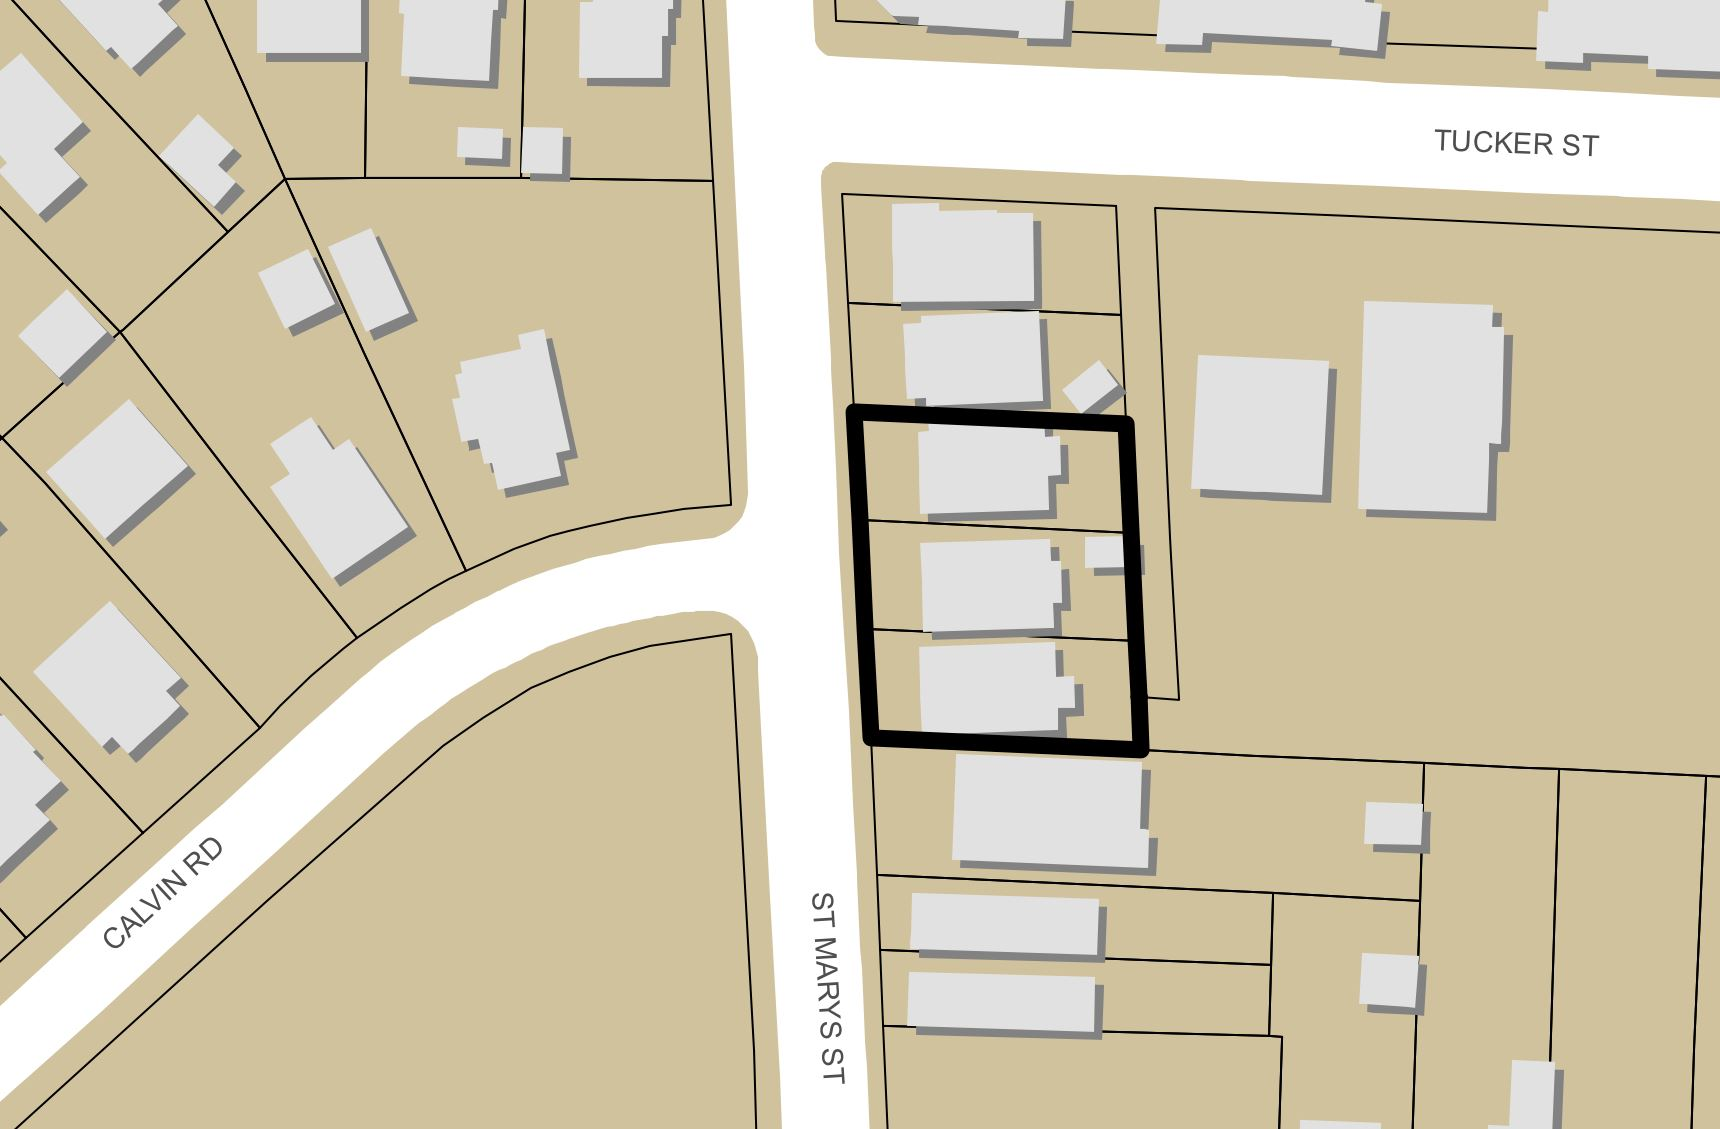 Plans Show New Townhome Project for St. Mary\'s Street